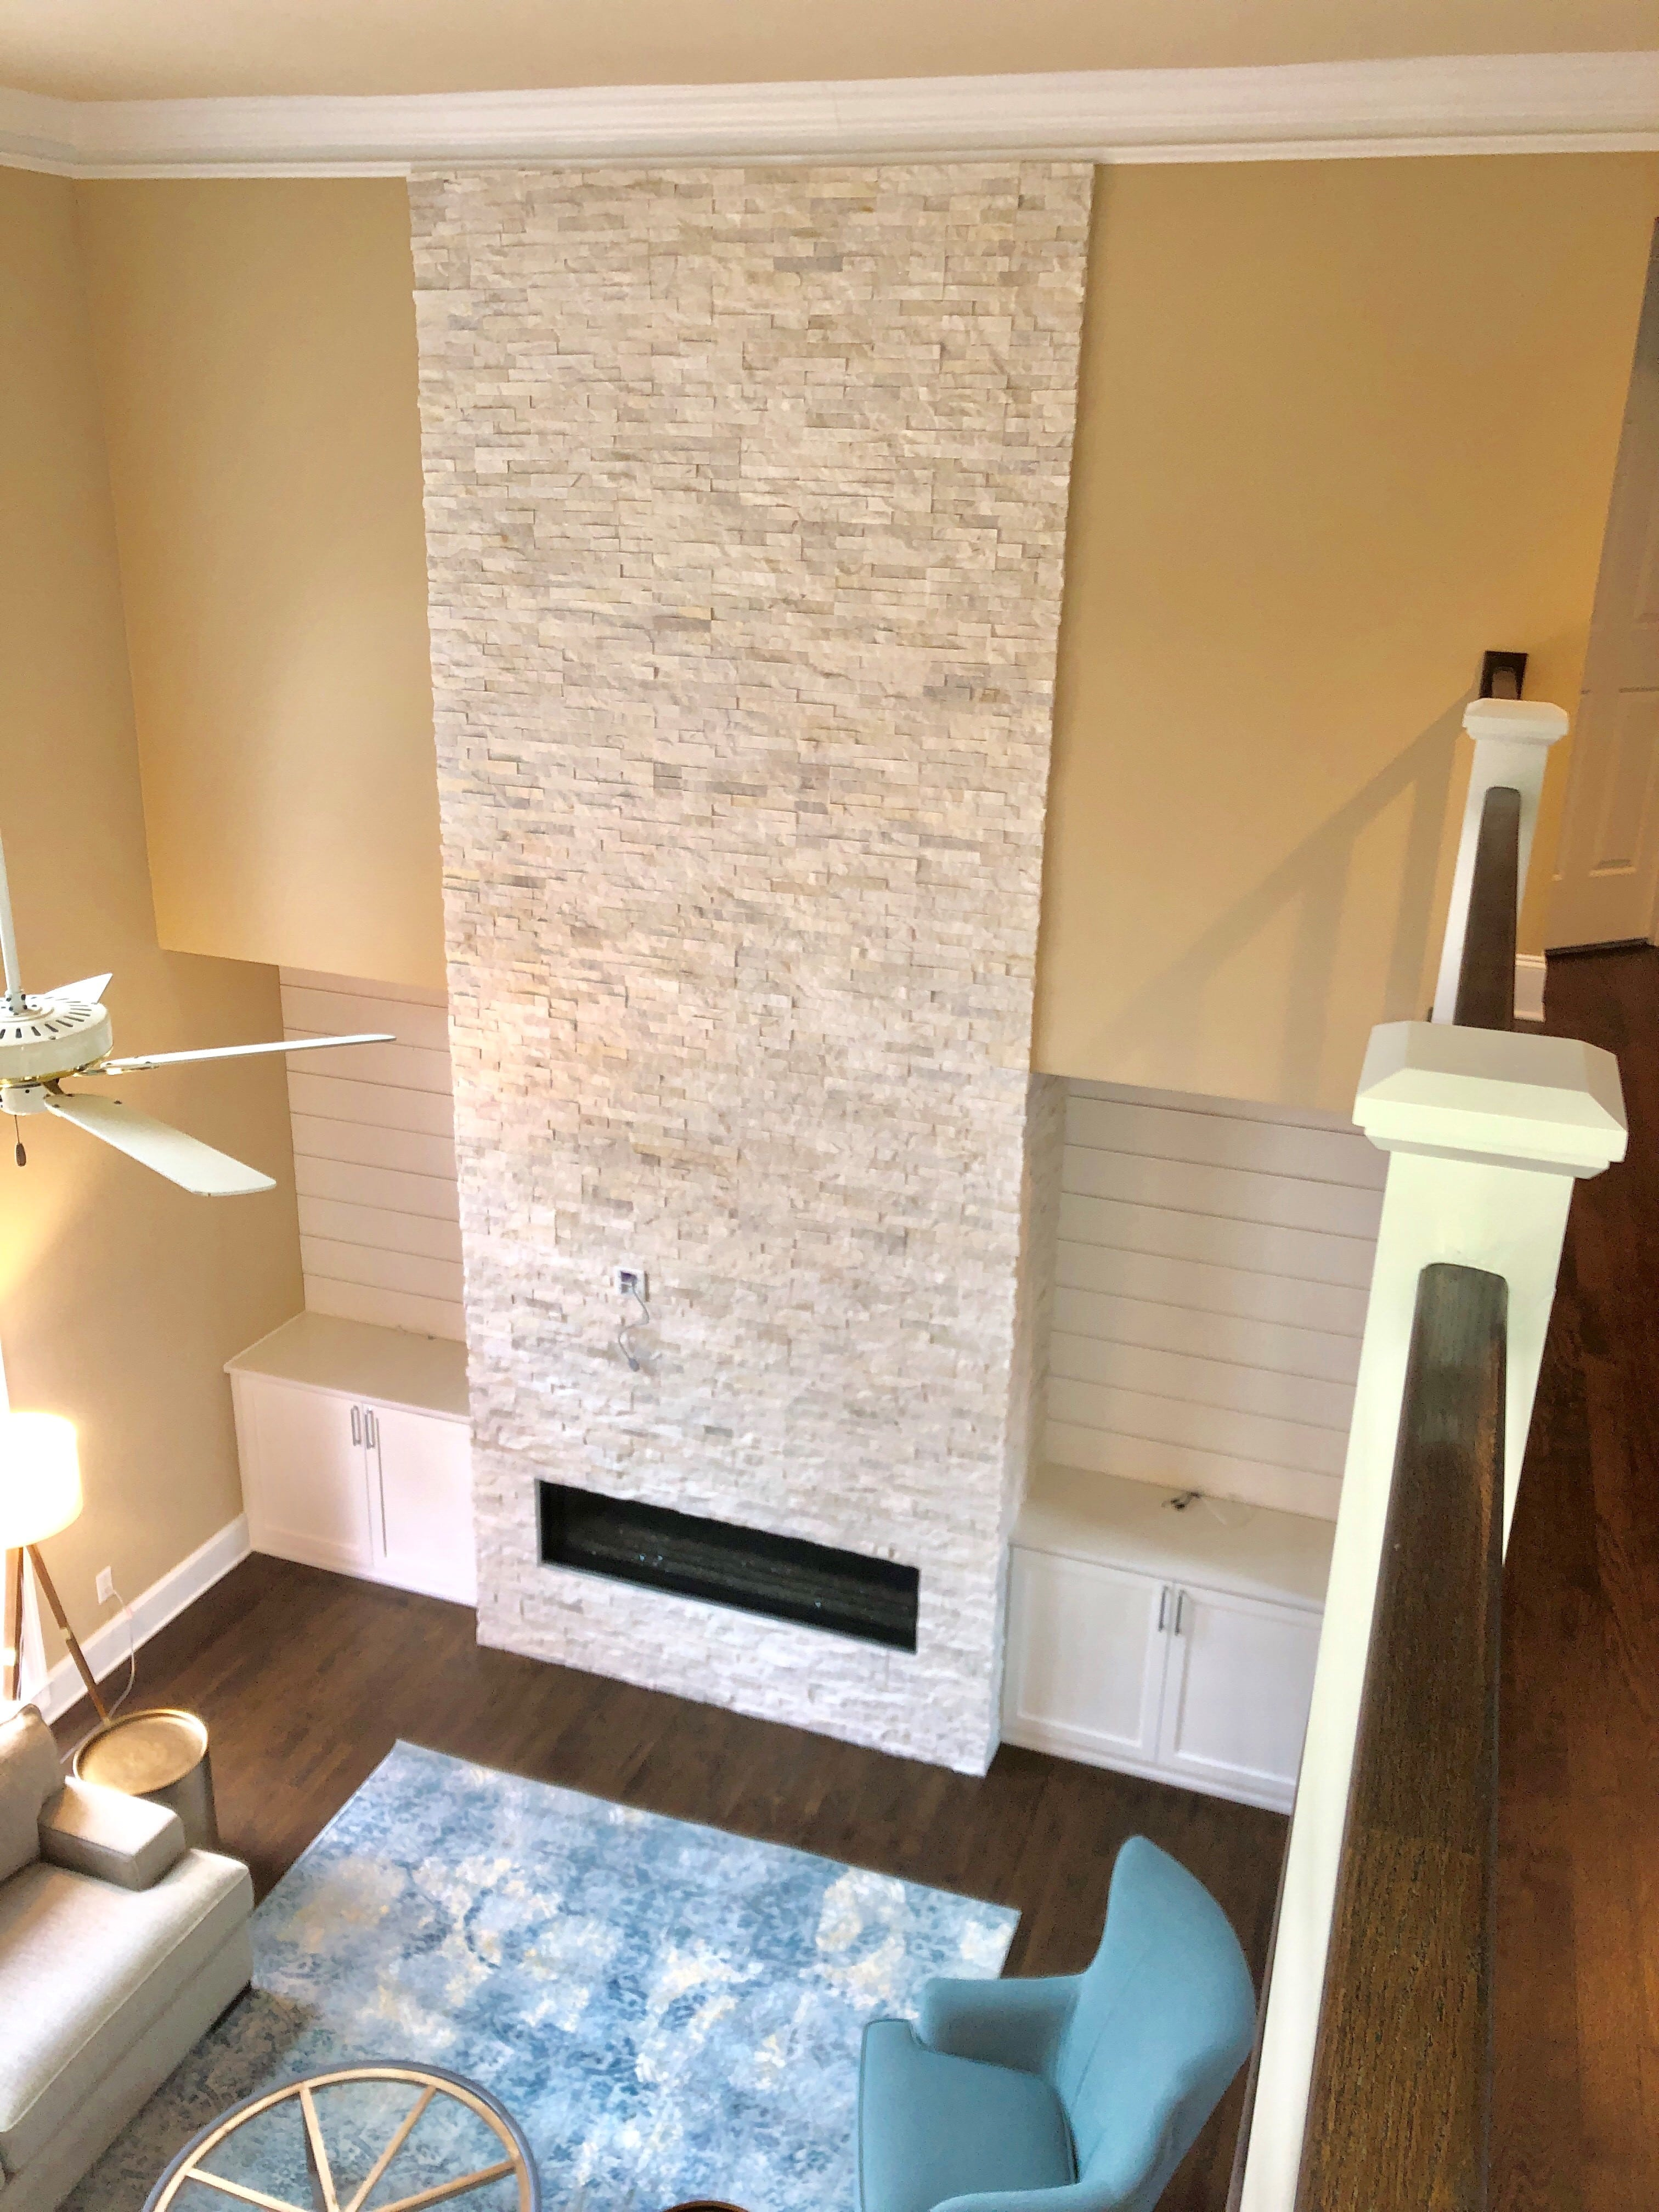 Norstone White Rock Panels used on a two story residential fireplace as seen from an upper stairway looking down